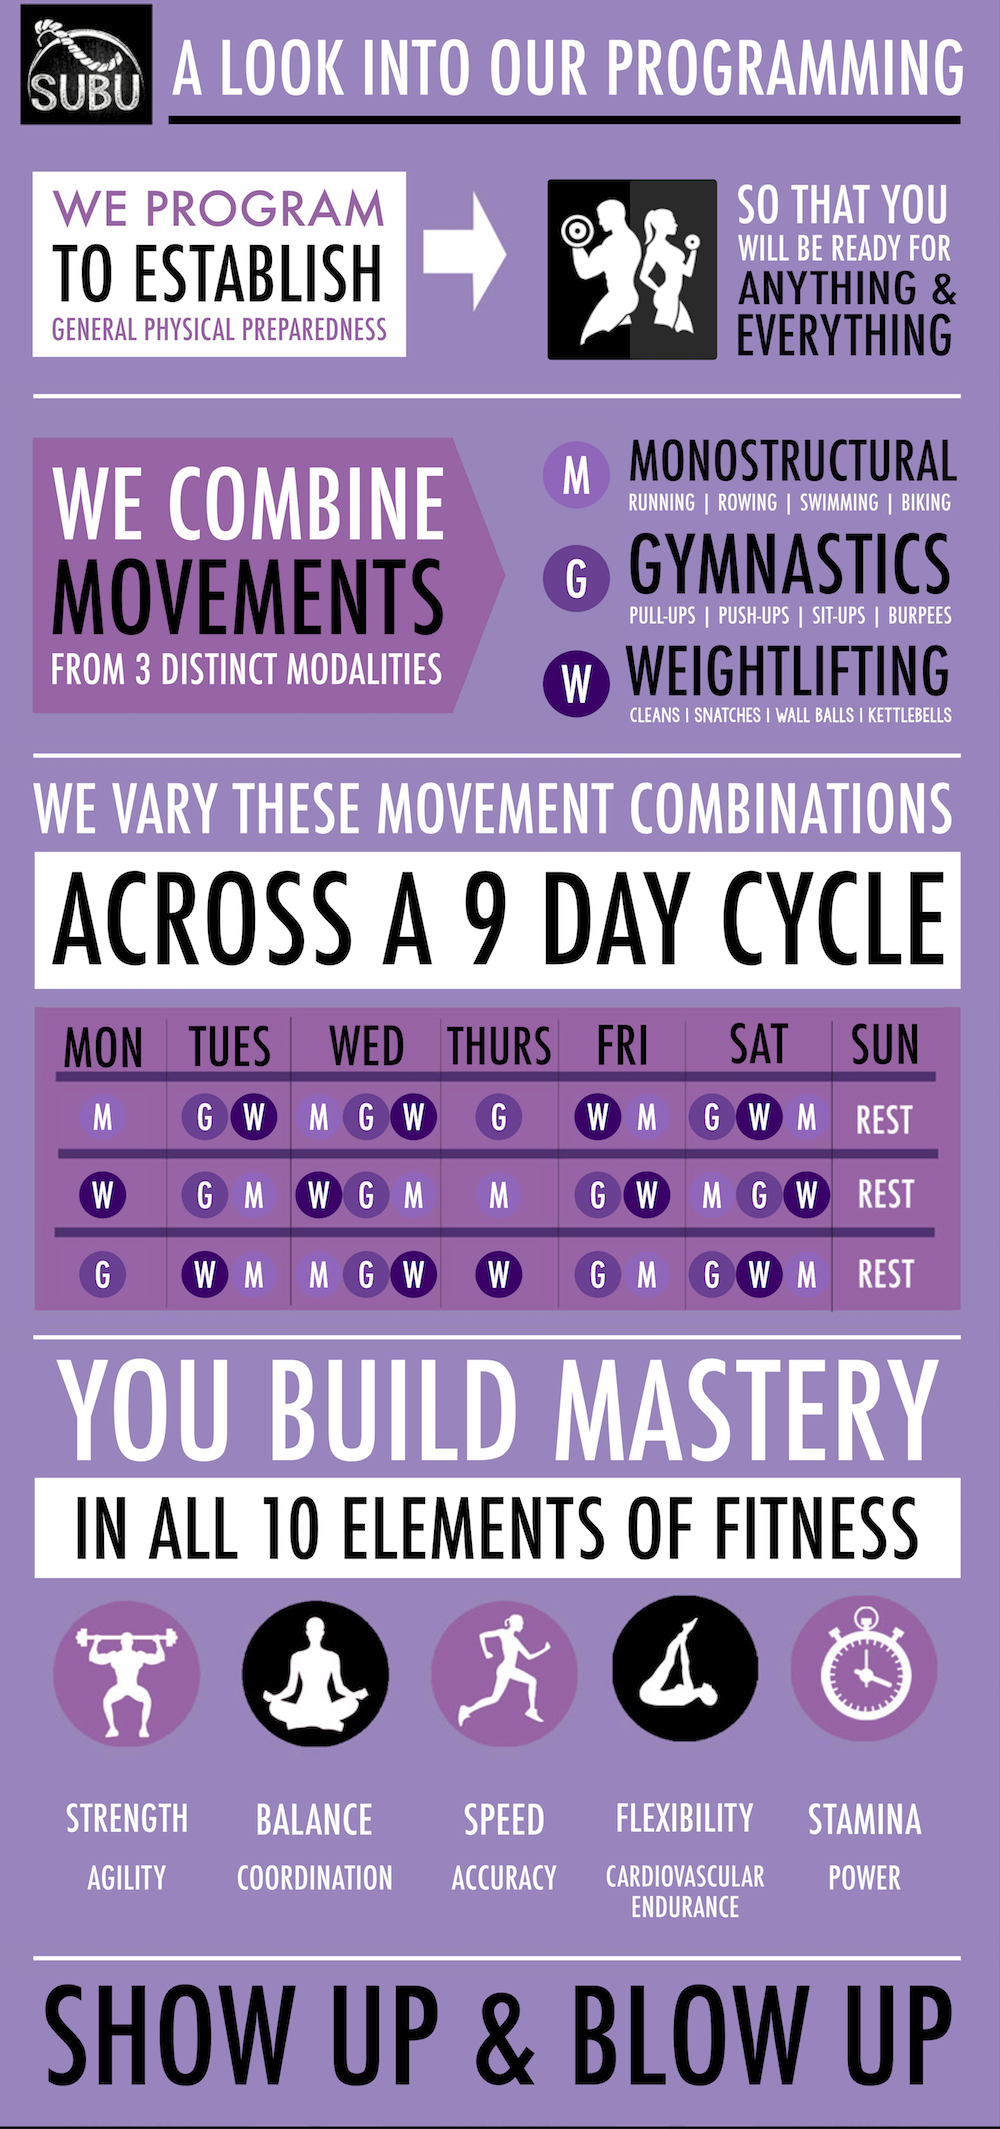 A Look Into Our Programming — Subu CrossFit of Orlando